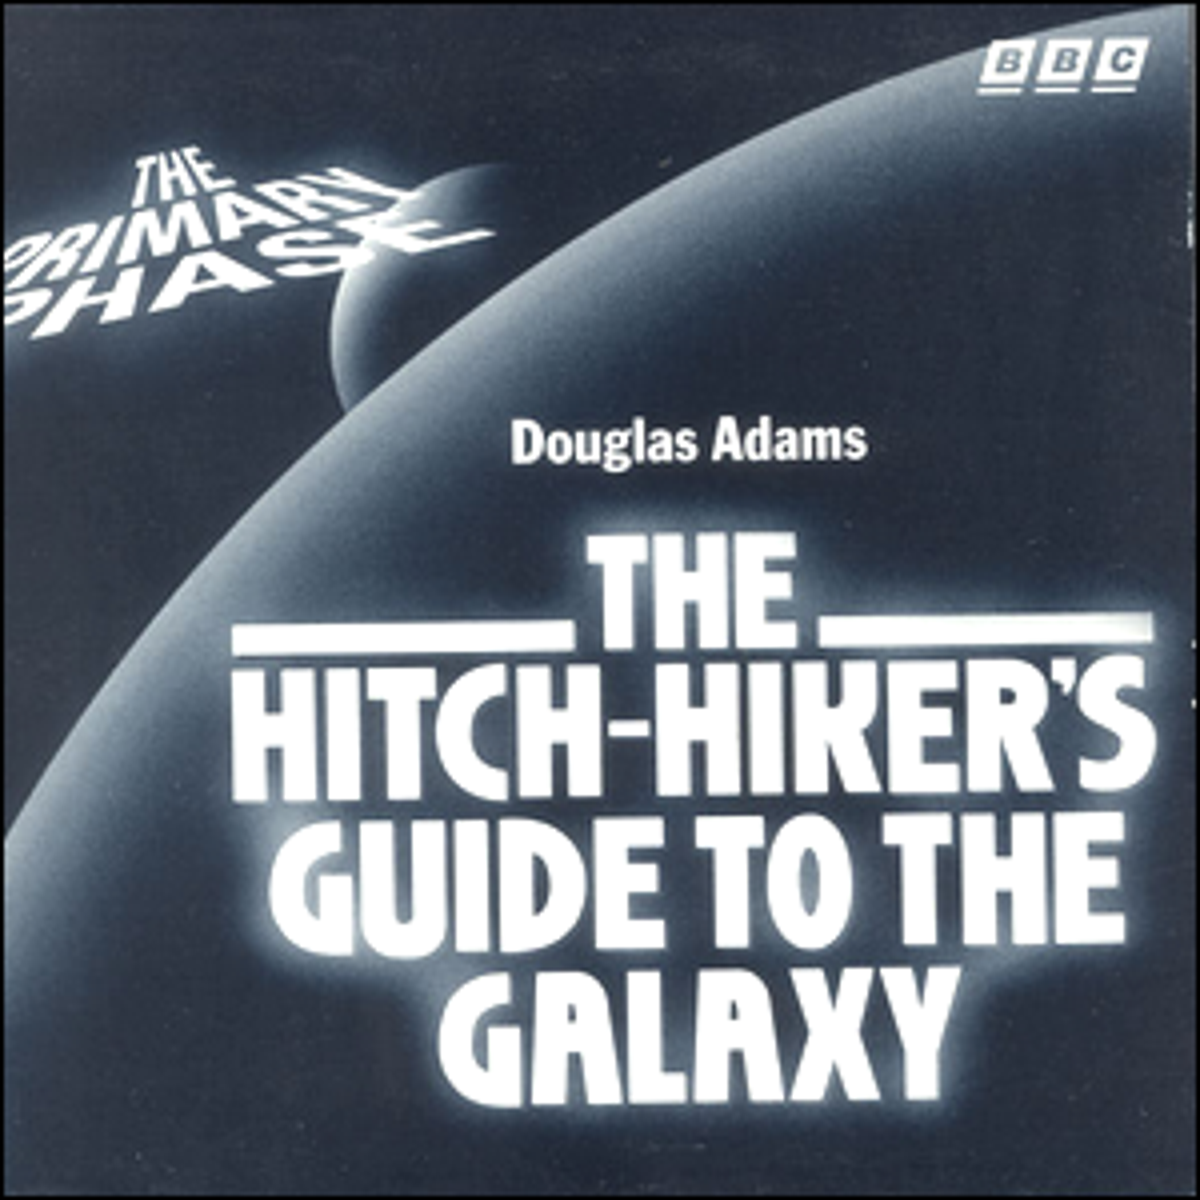 The cover art for the first part of the Hitchhiker's Guide to the Galaxy radio series.